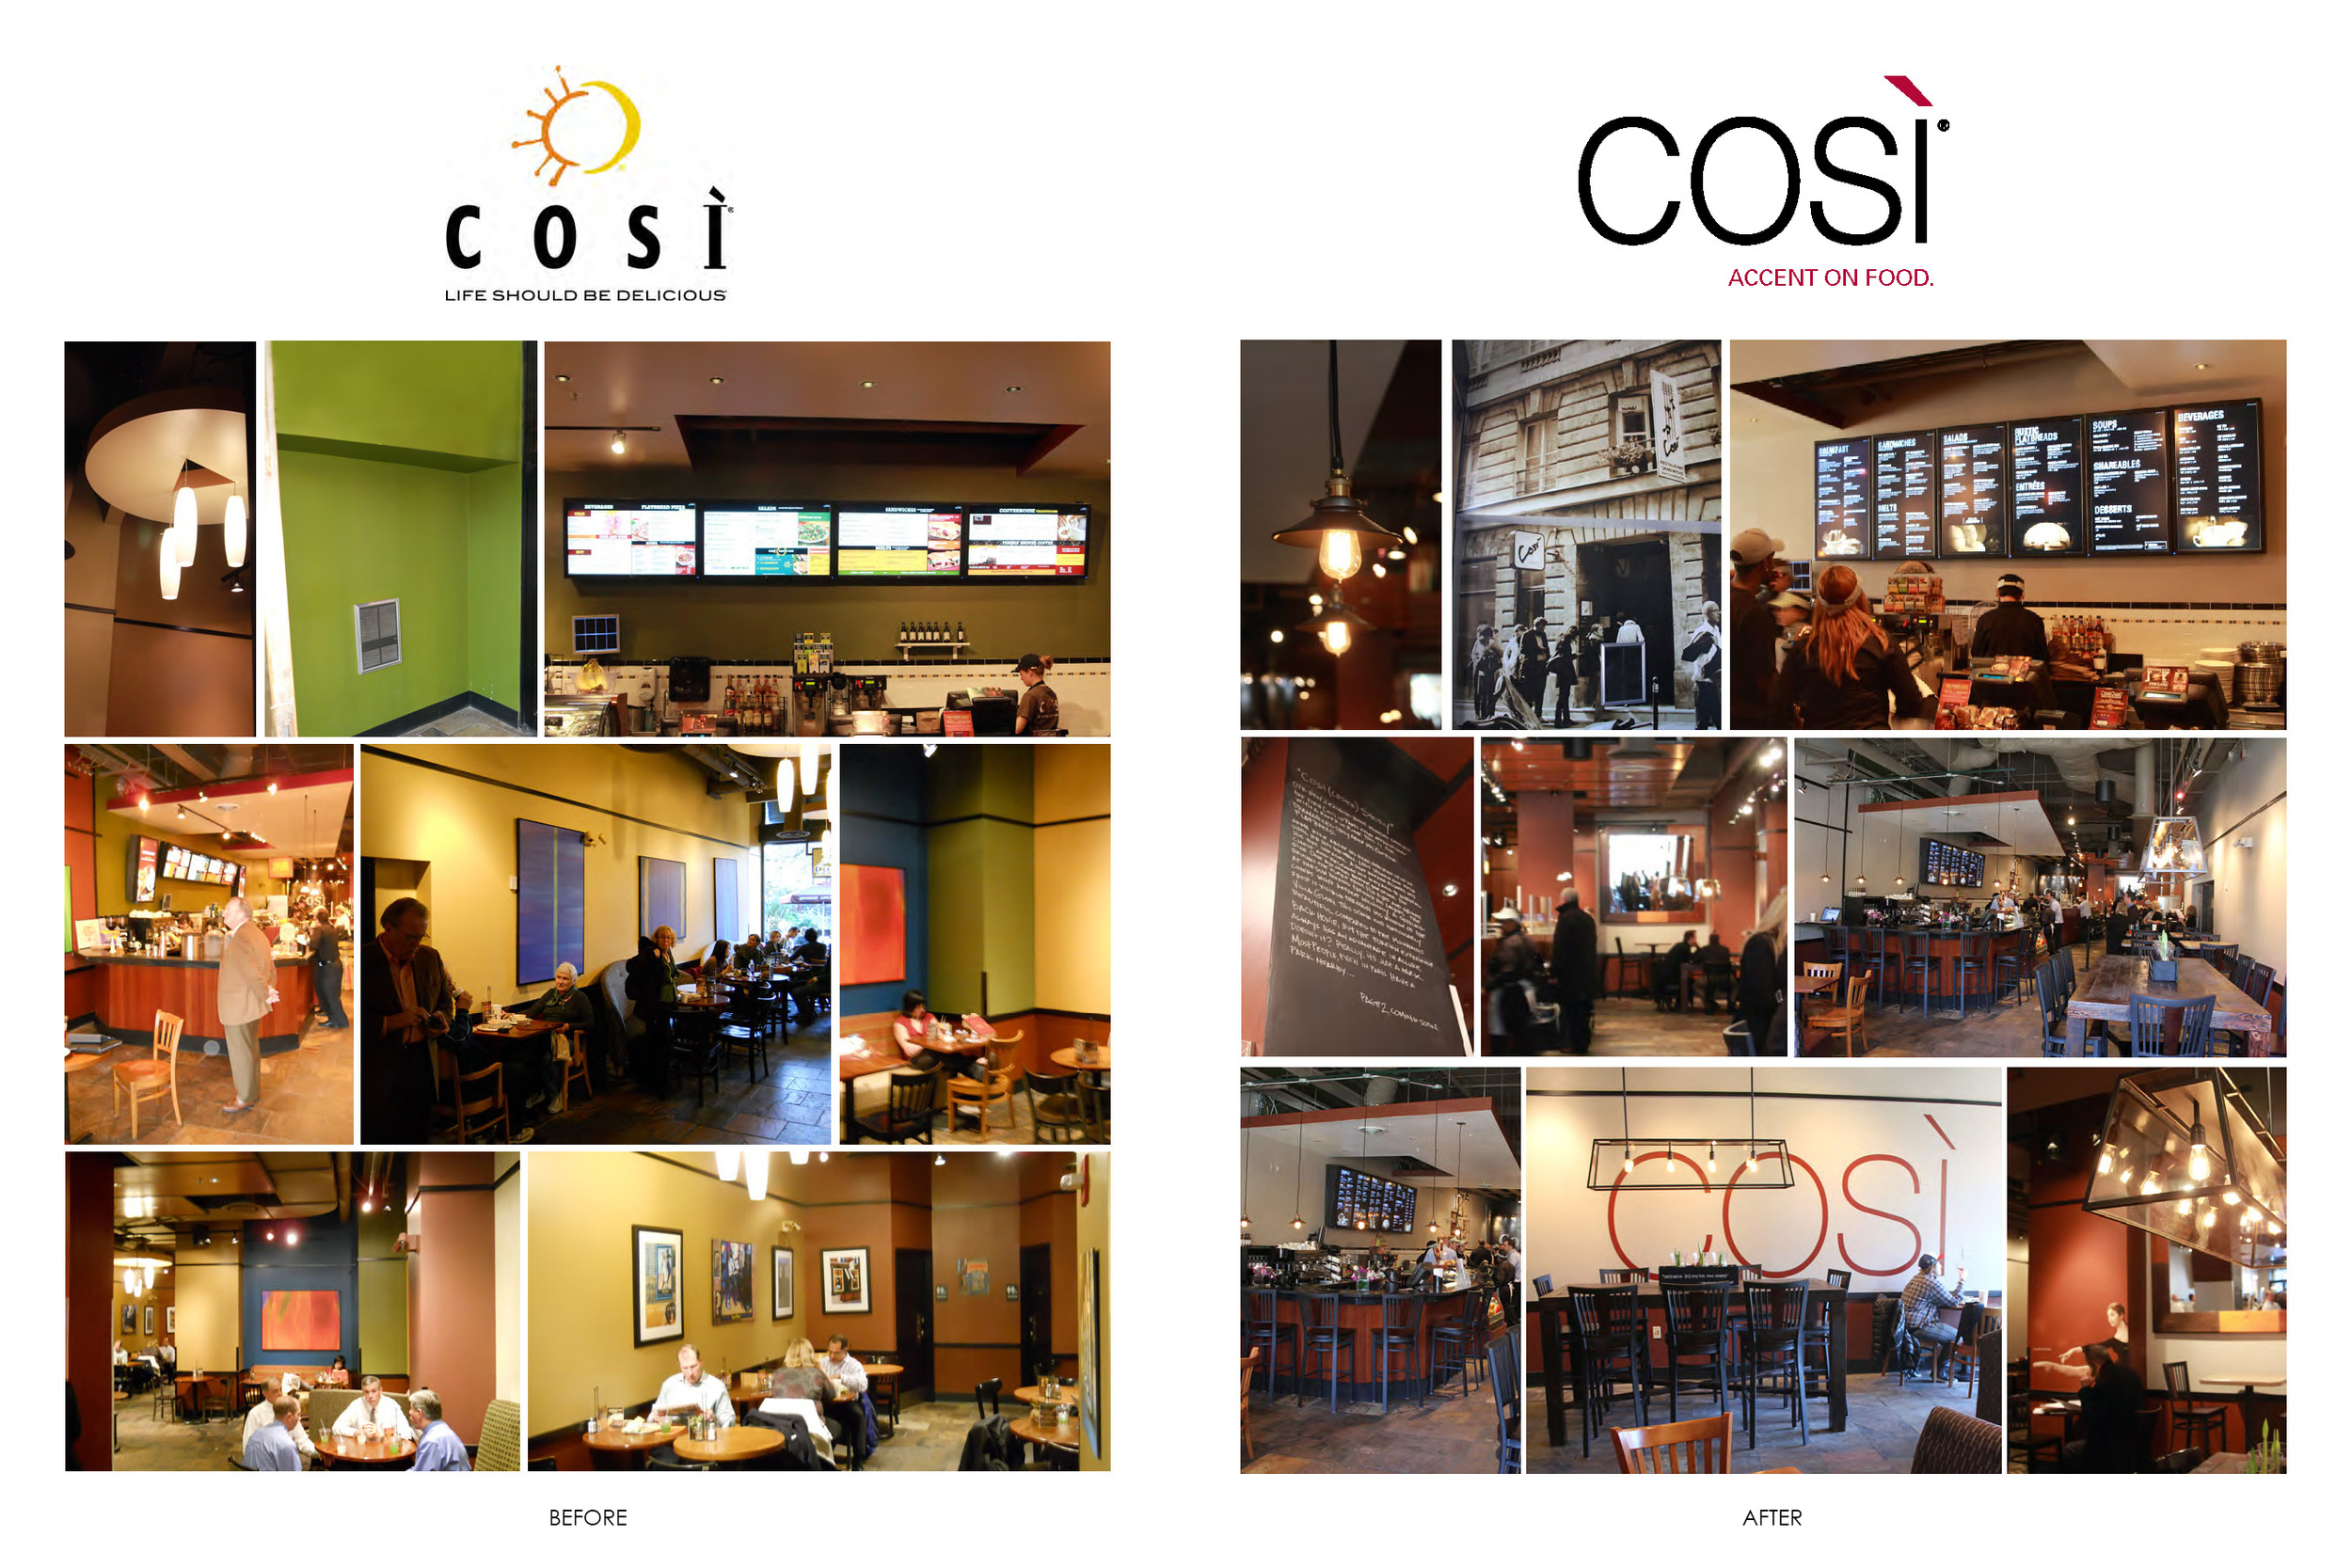 Cosi Brand and Store Redesign